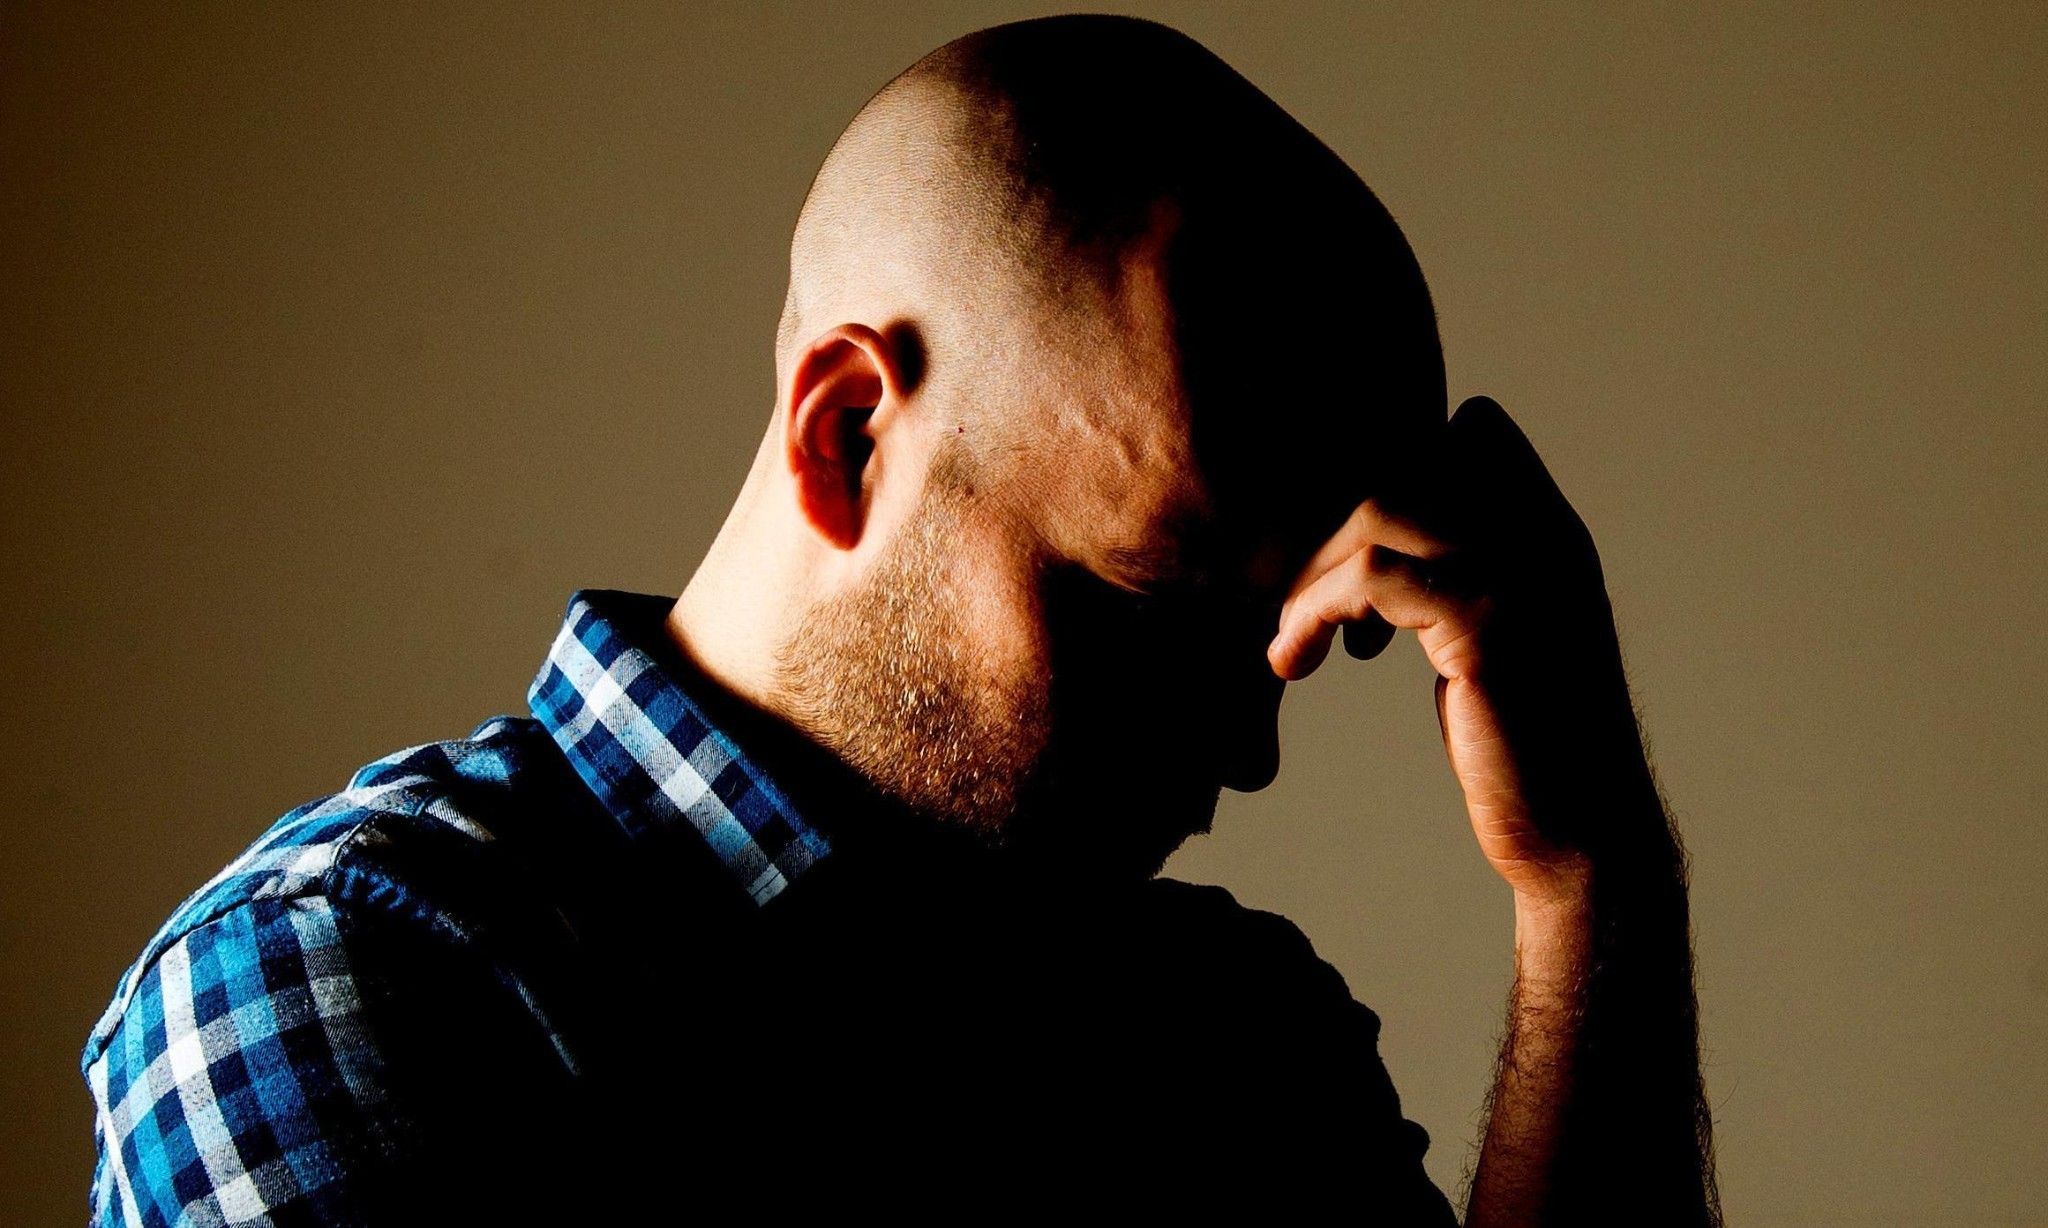 Men much less likely to seek mental health help than women